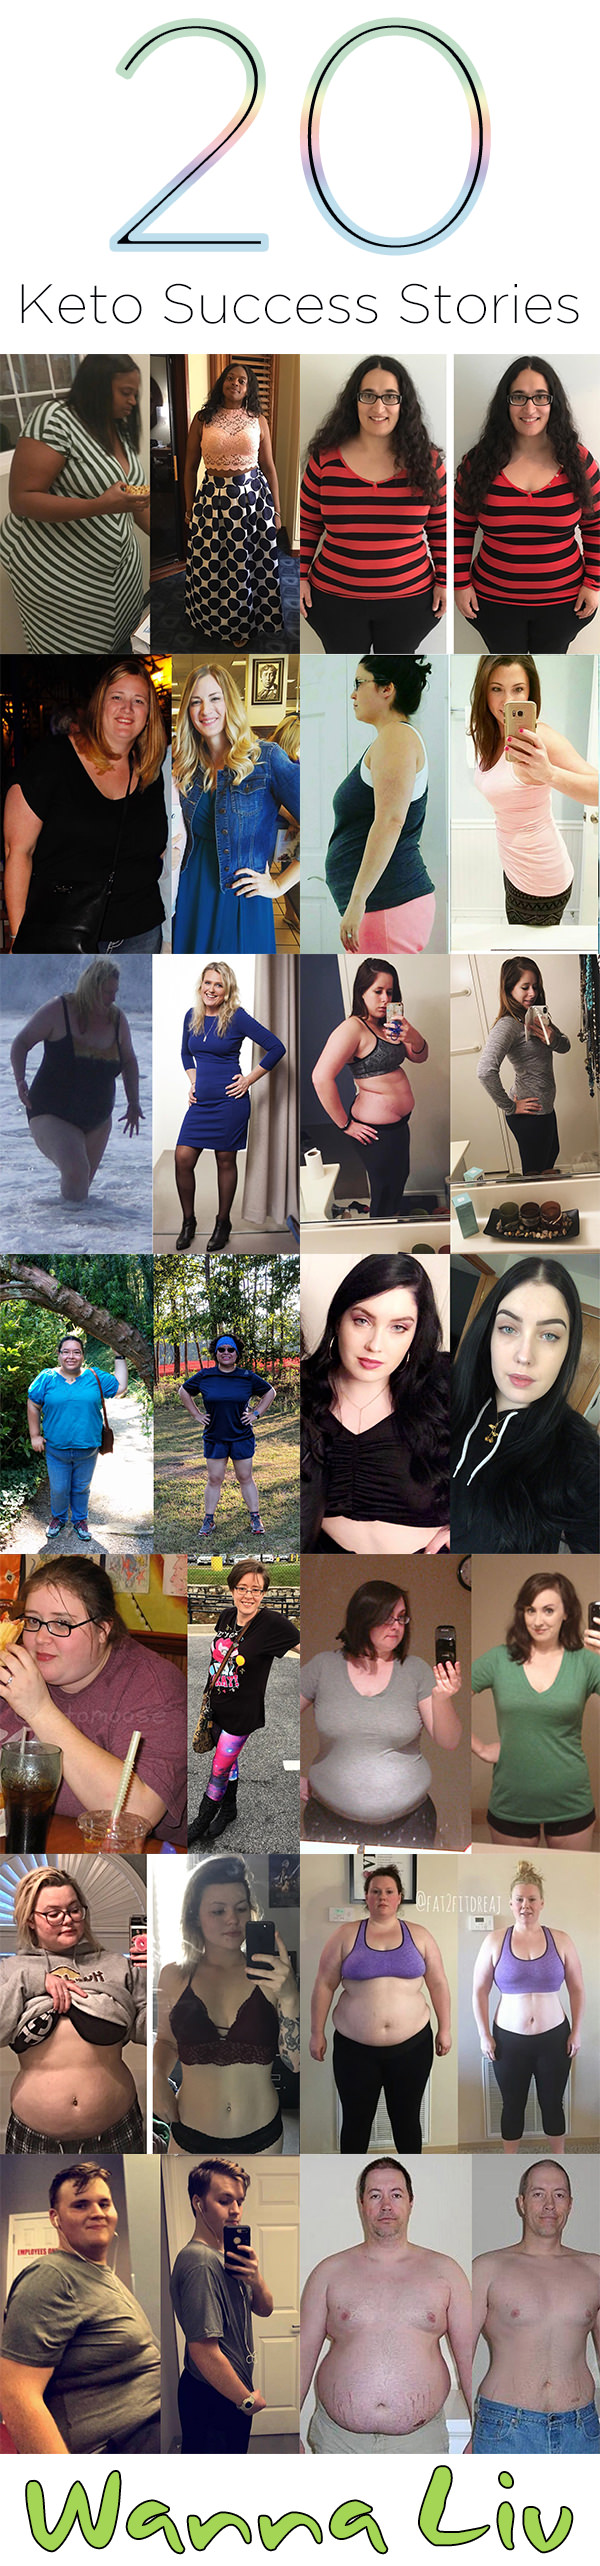 Click the image or visit our website to see these incredible 20 Keto Success Stories! #wannaliv